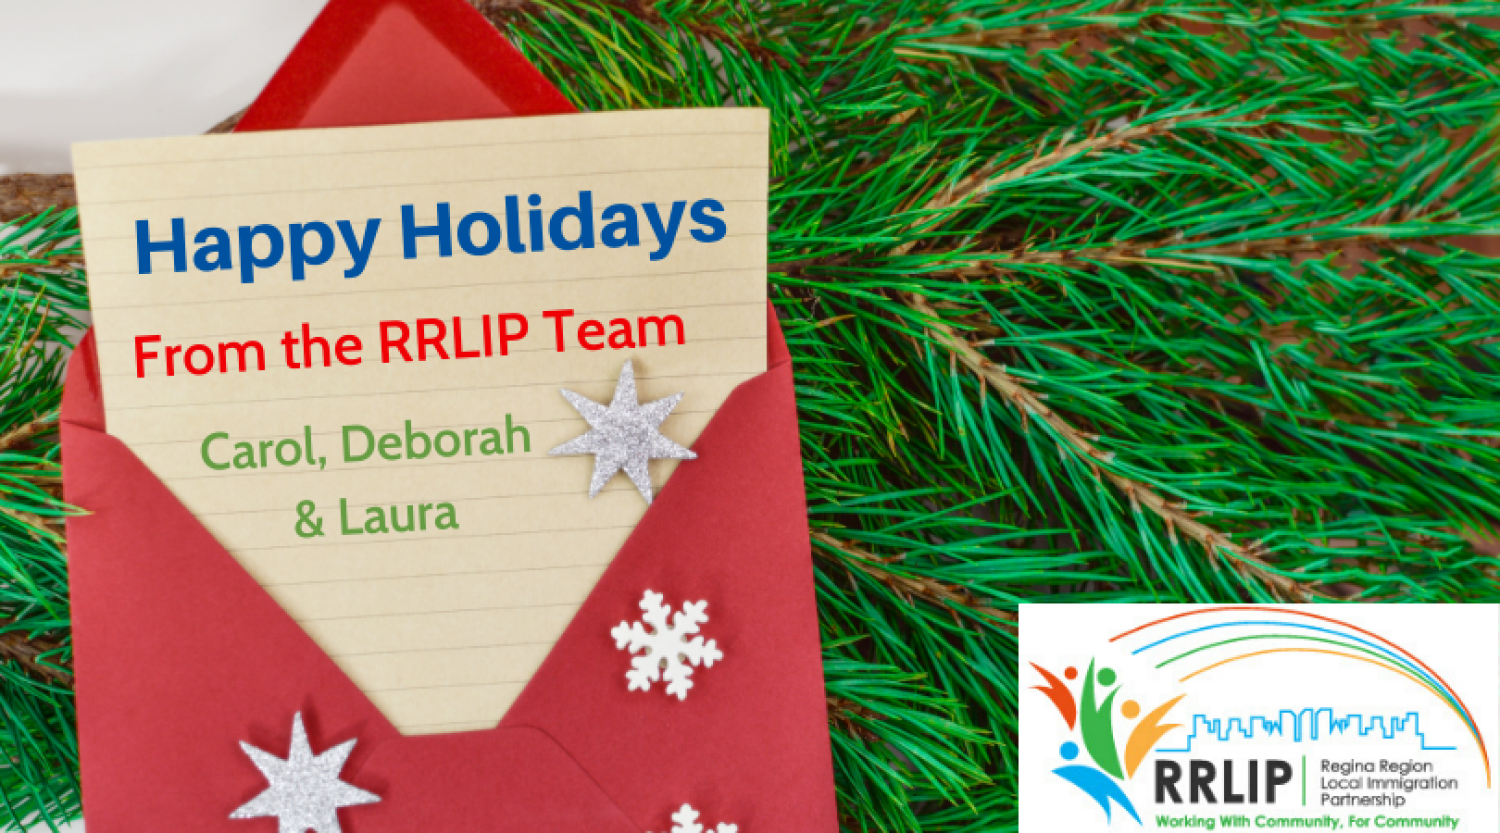 Happy Holidays From the RRLIP!!